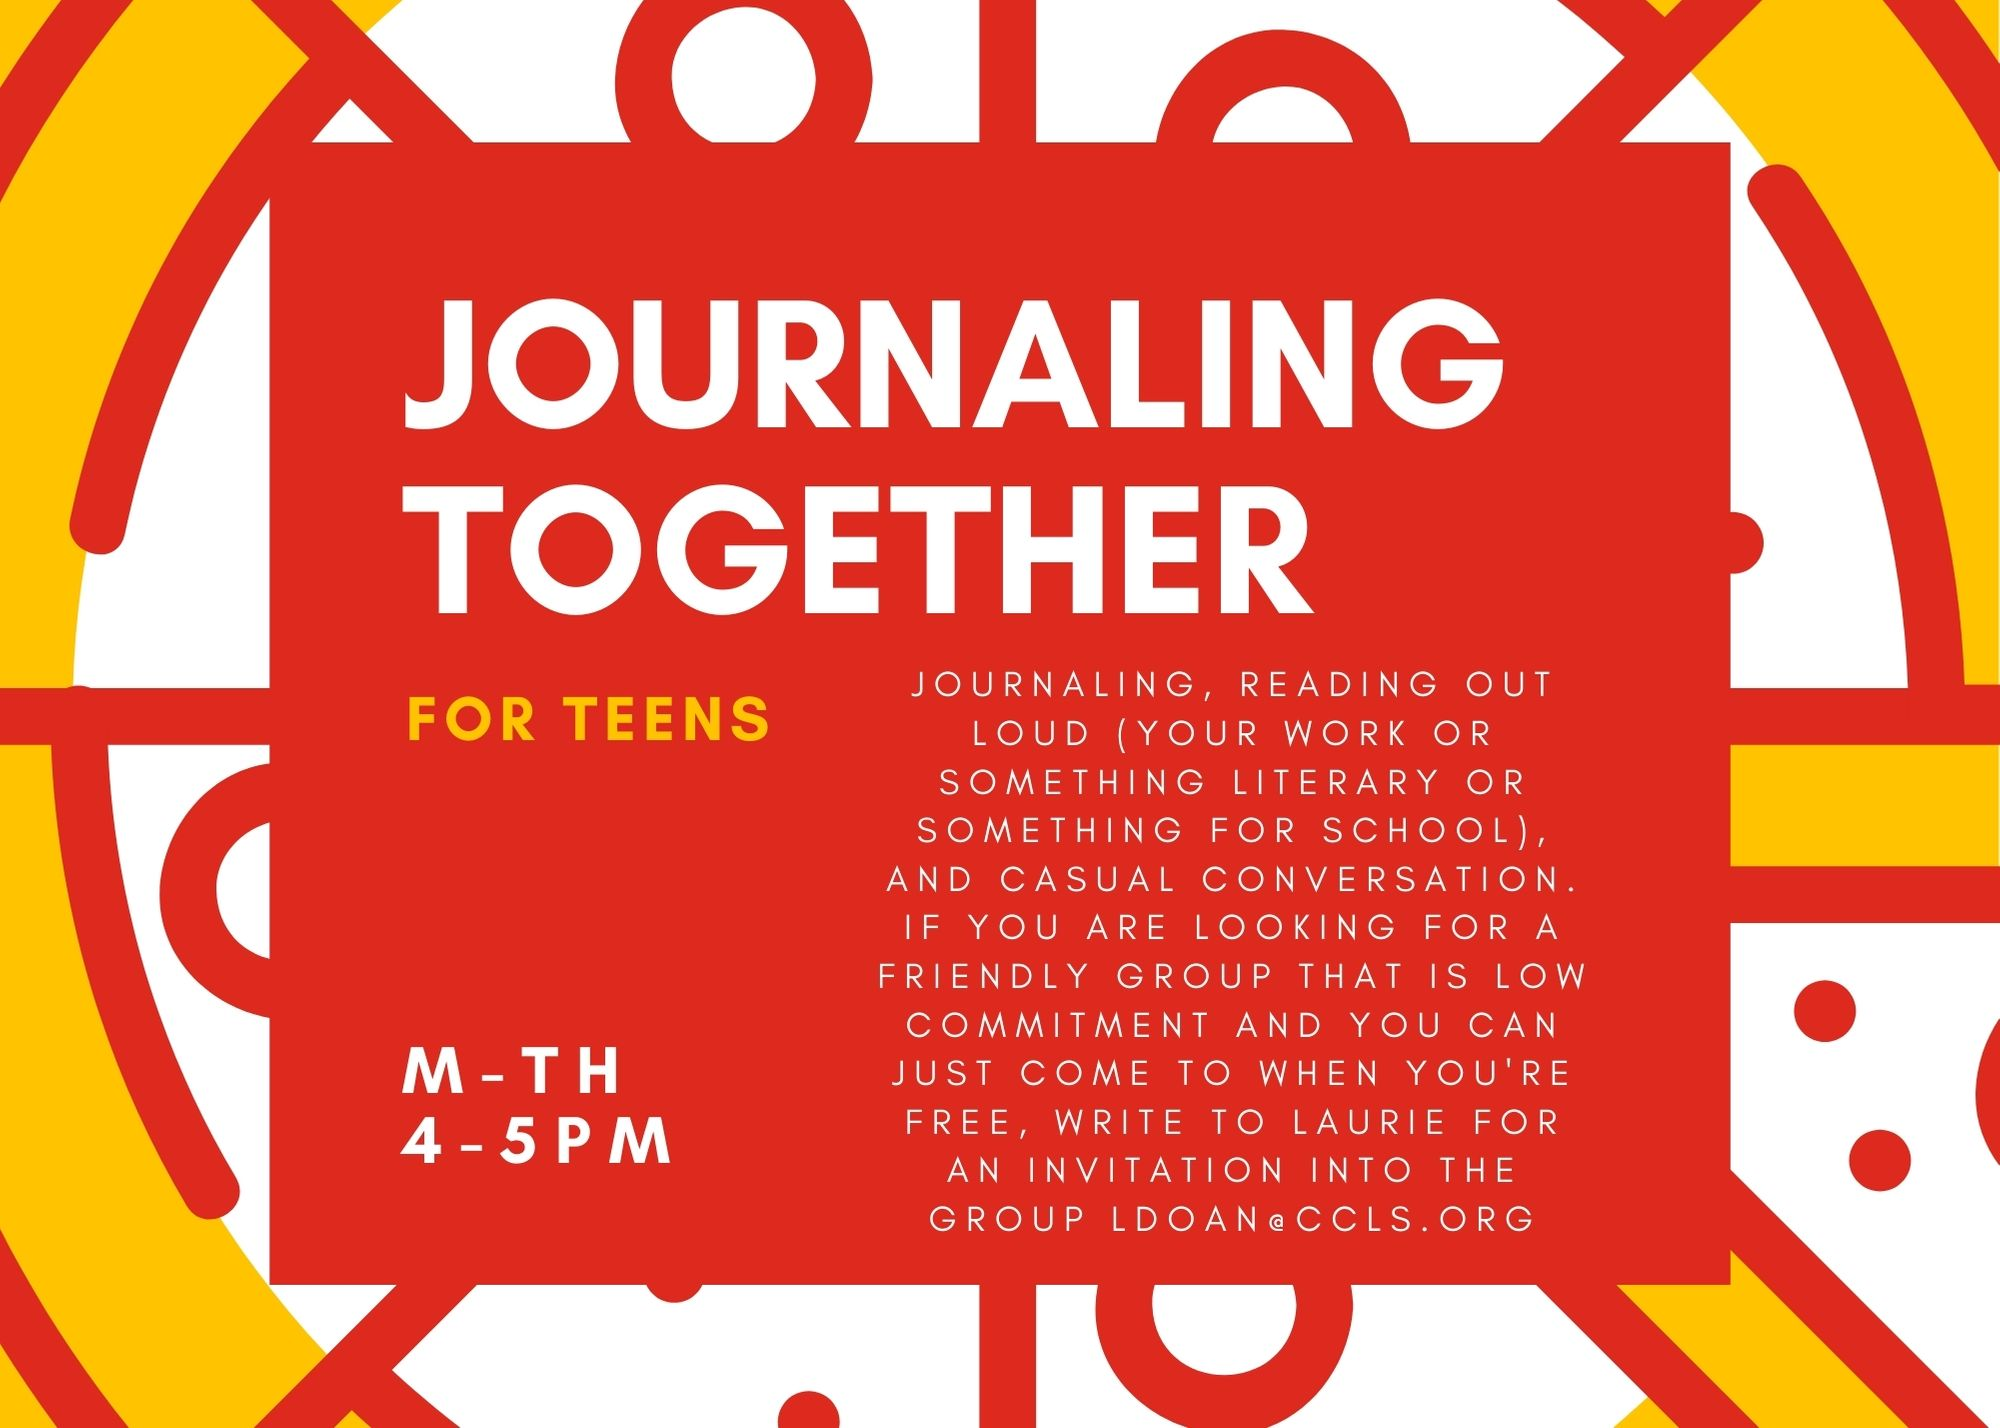 Journaling Togetther for Teens